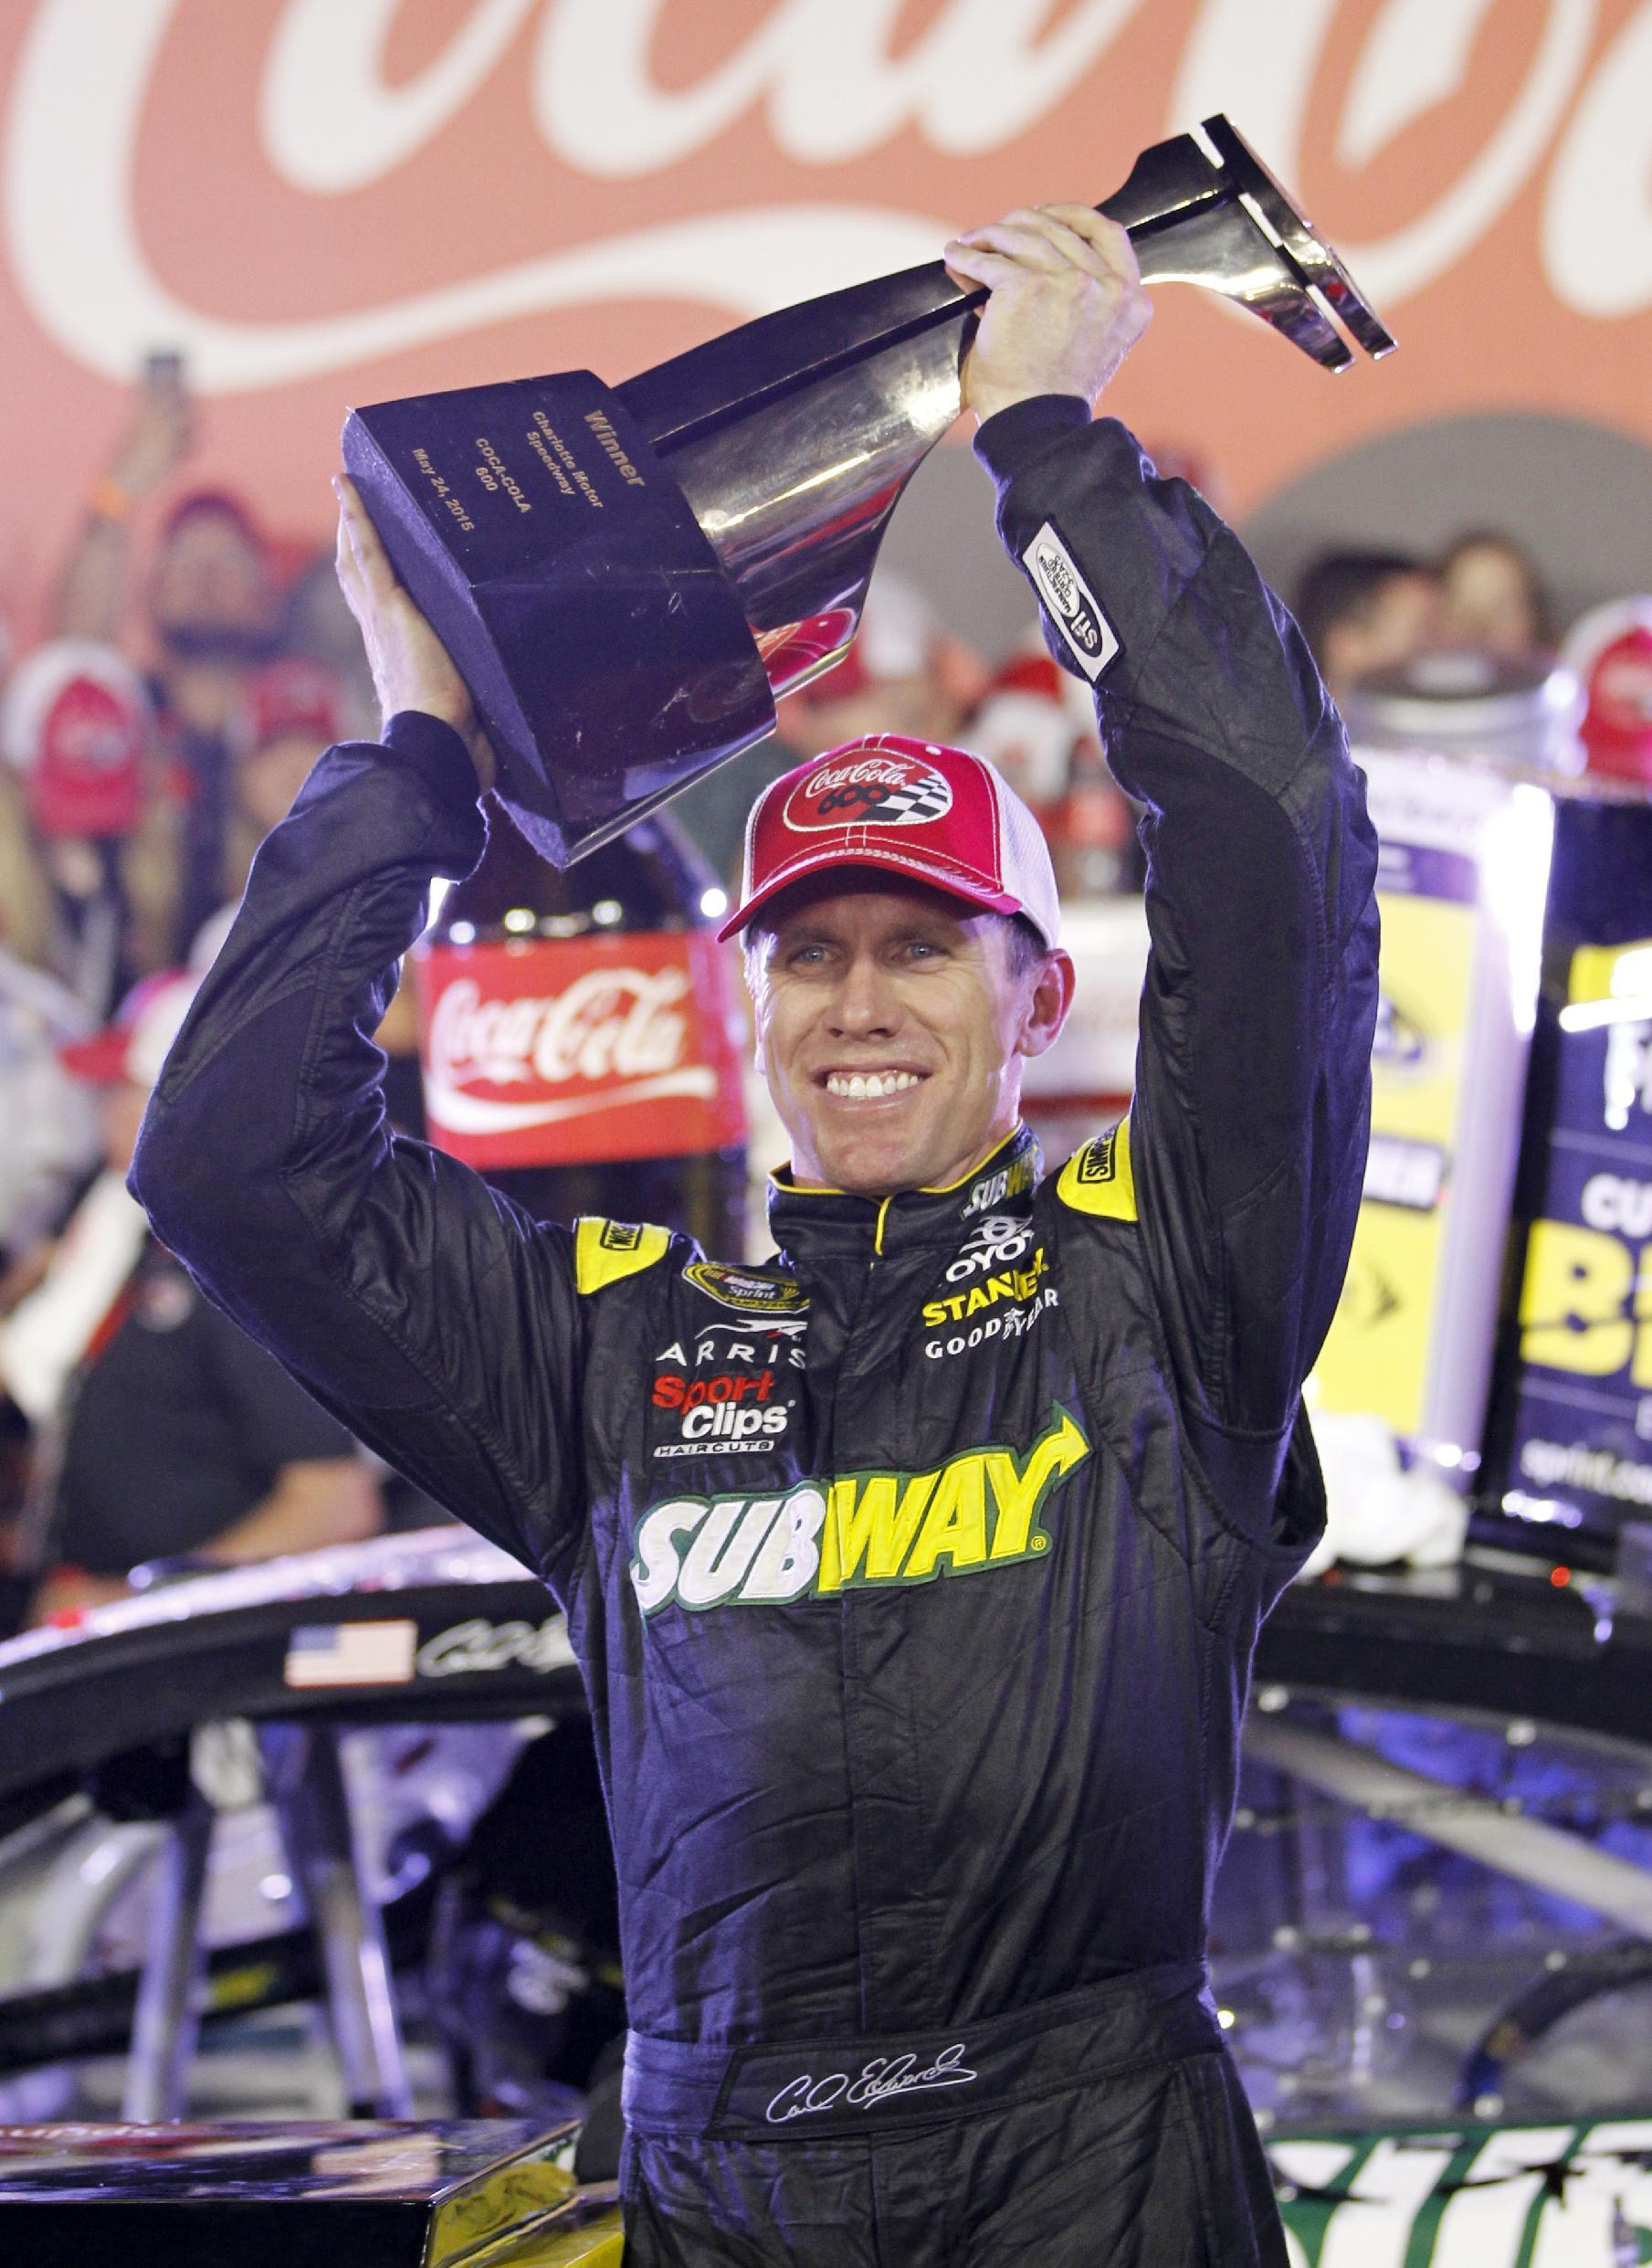 Carl Edwards races to first victory for new JGR team